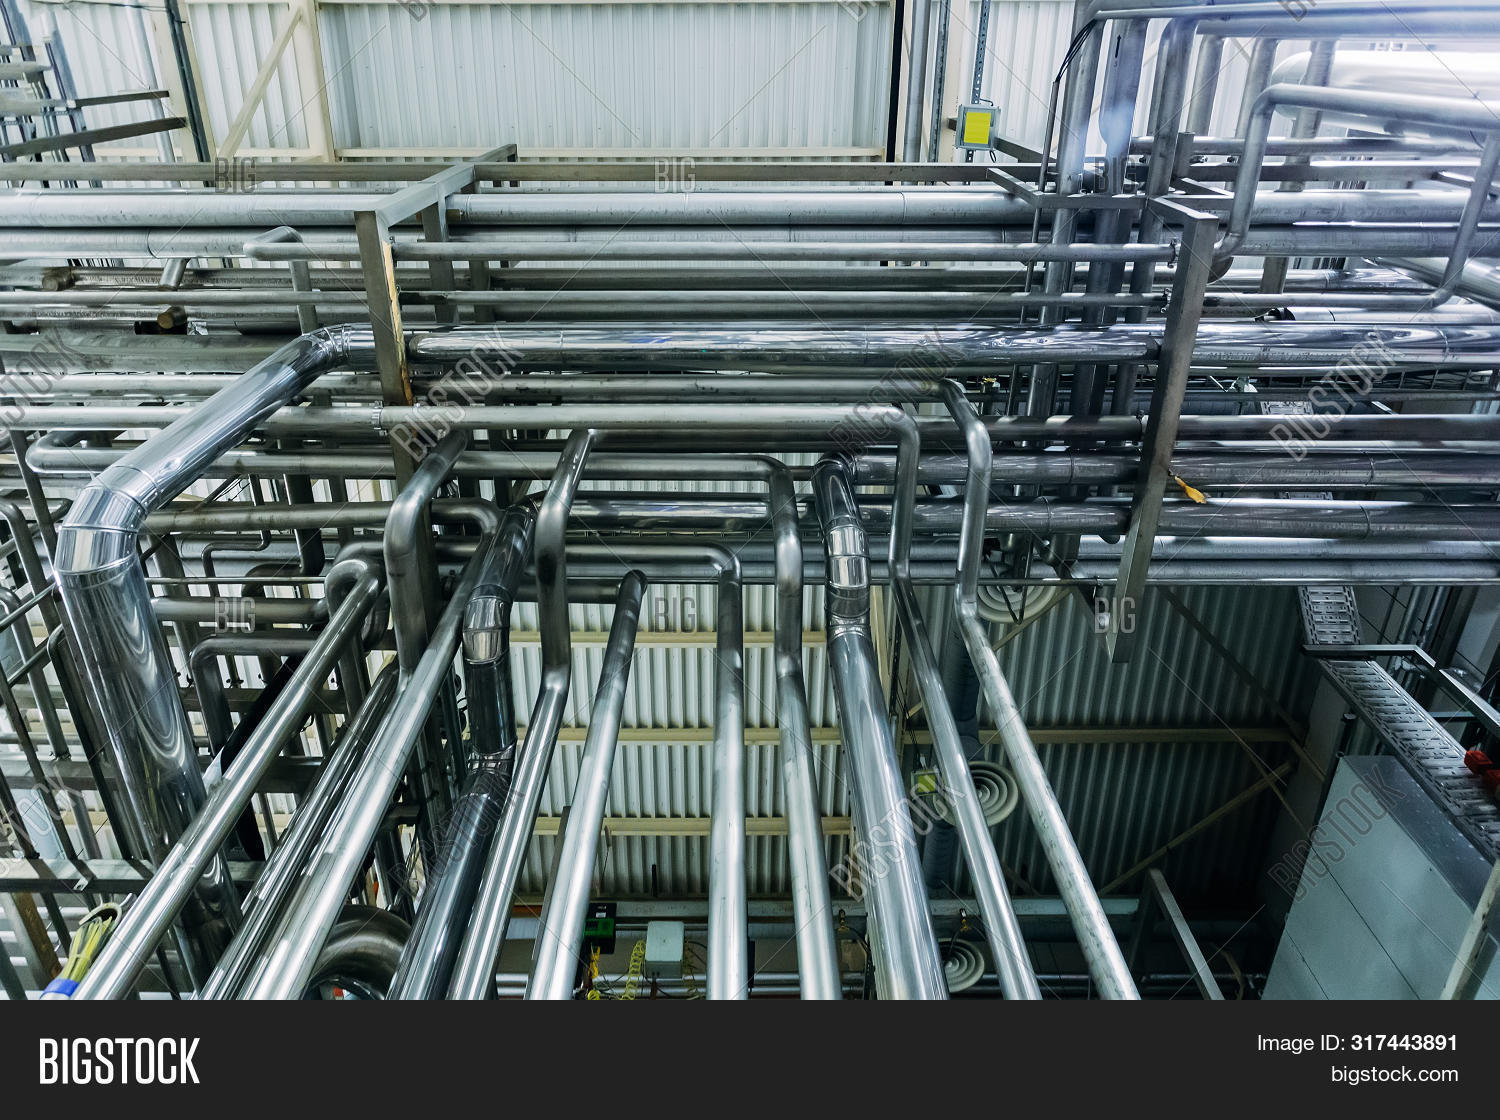 Steel Pipes Industrial Image & Photo (Free Trial) | Bigstock